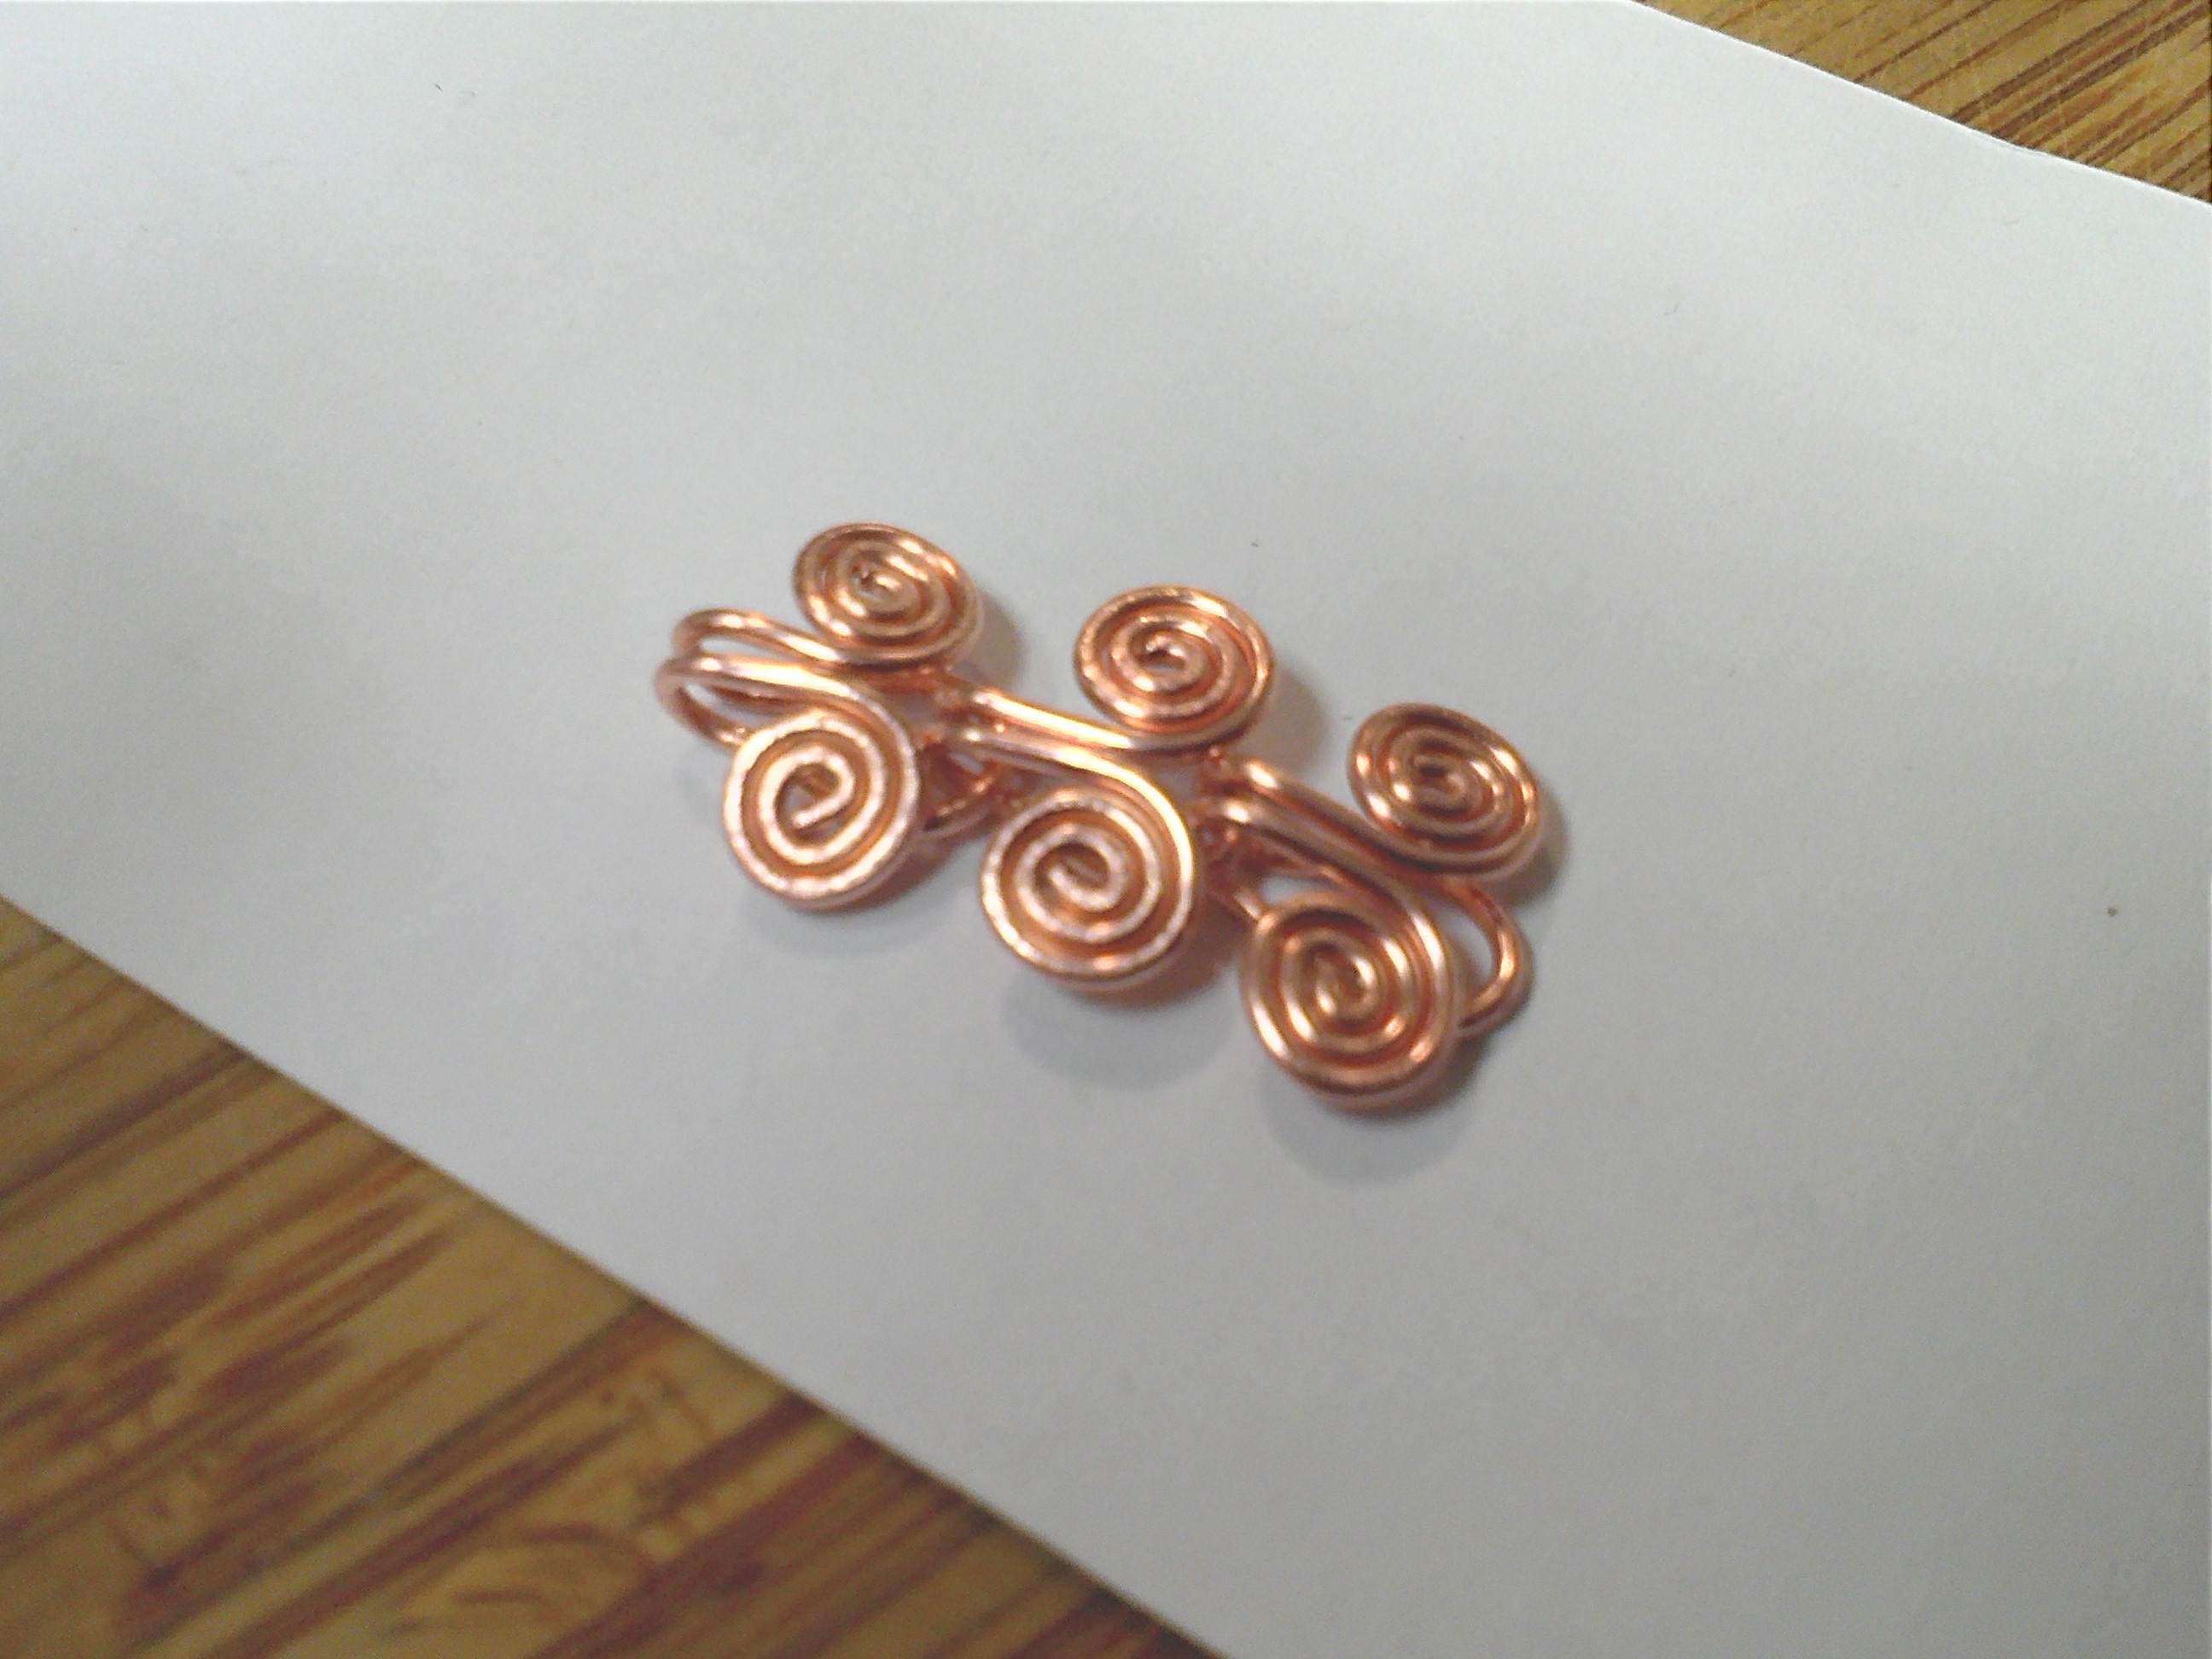 Three Great Ways To Incorporate Swirls Into Your Jewelry